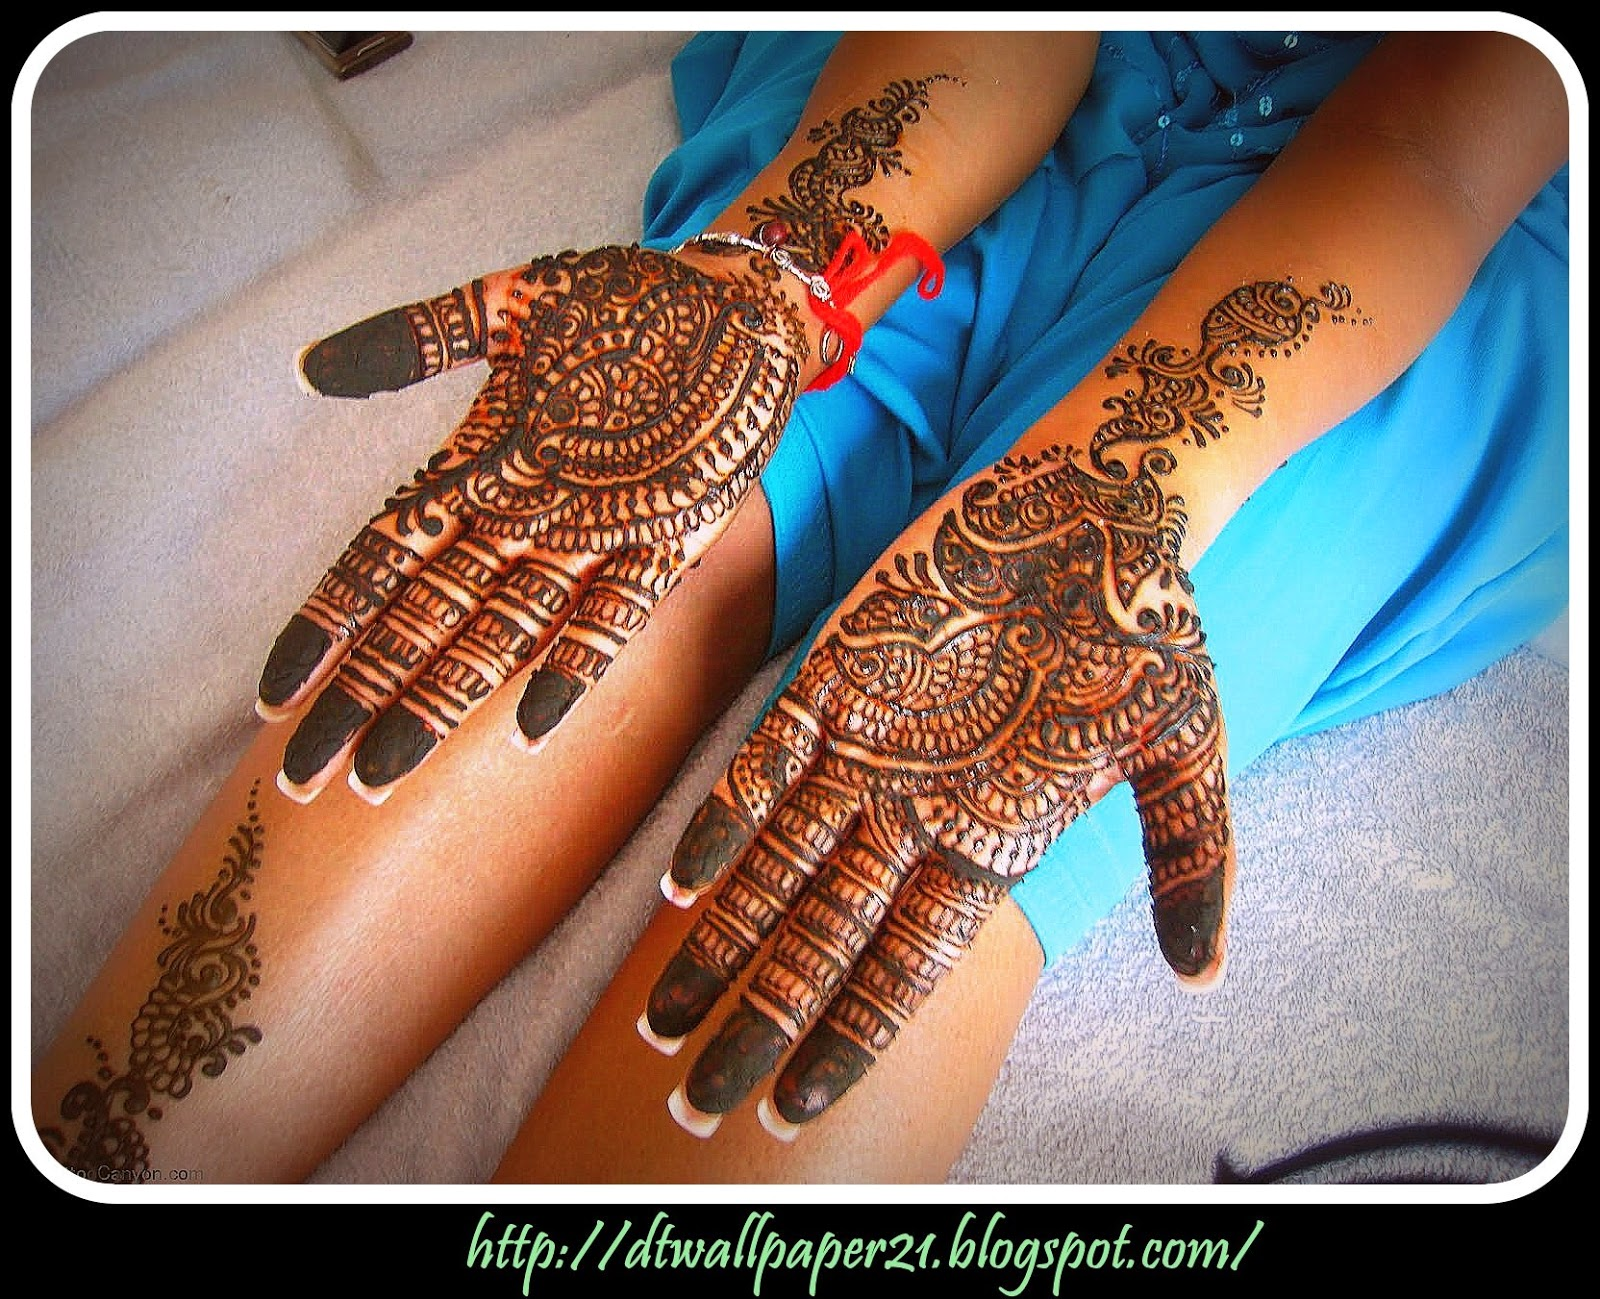 Leg Mehndi Wallpaper : Desktop wallpaper background screensavers